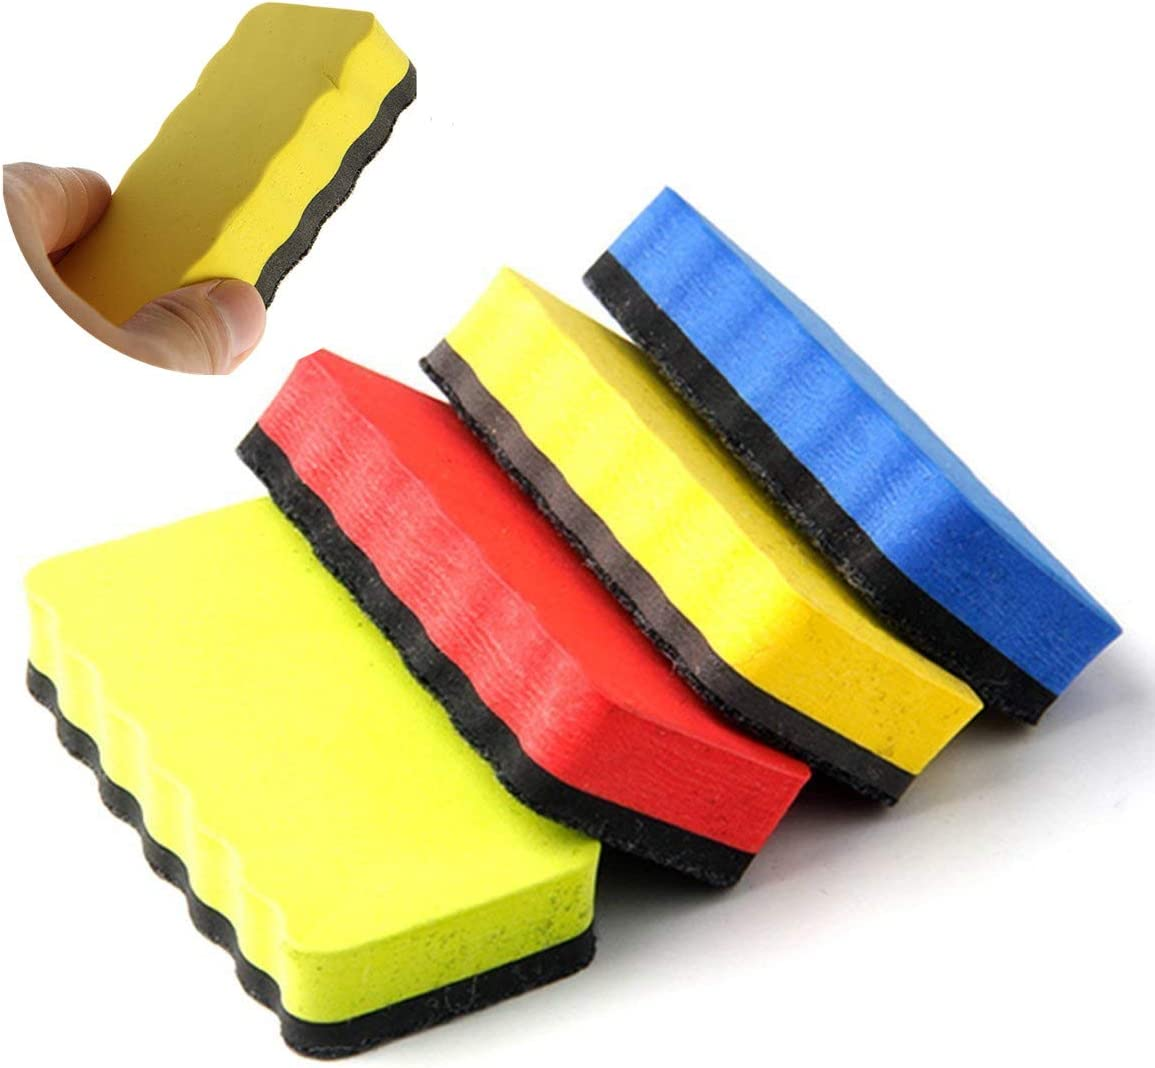 Colorful Magnetic Whiteboard Eraser Dry Erasers Chalkboard Cleansers Foam Wiper for Kids School Office Supplies Office Stationery